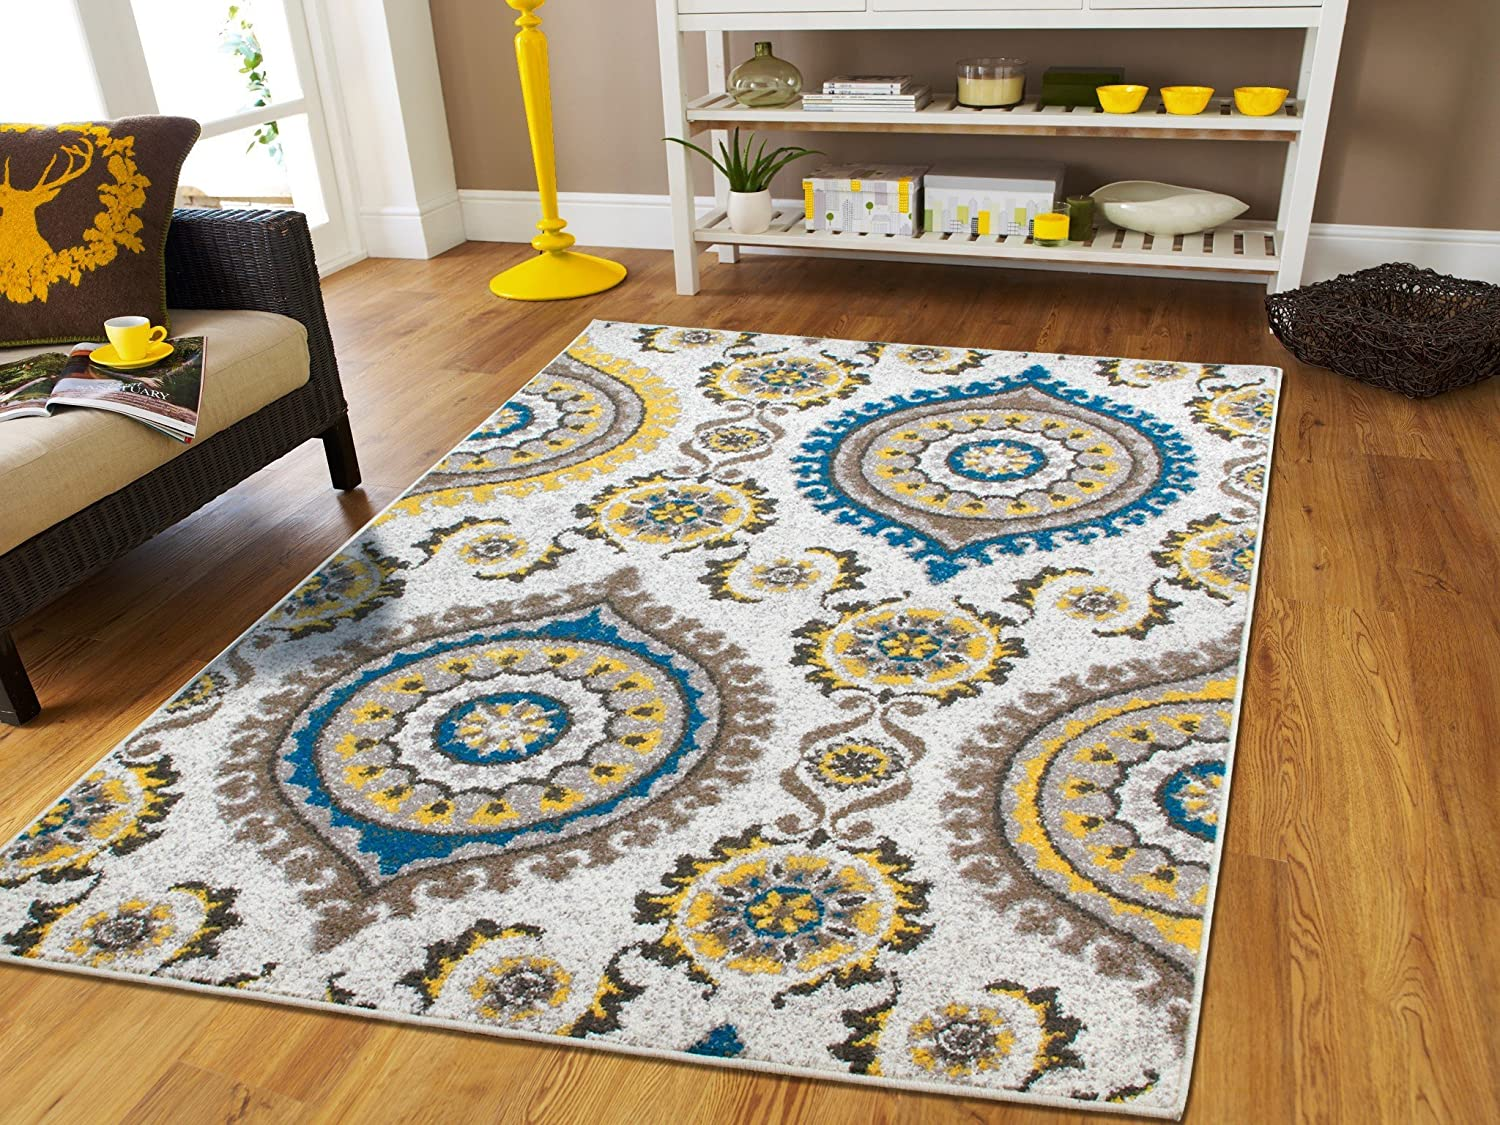 Amazon Com Contemporary Rugs For Living Room Area Rugs Modern Flowers 2x3 Rugs For Bedroom For Teens 2x4 Blue Cream Grey Door Mats Outside Entrance Rug Washable 2x3 Rug Furniture Decor